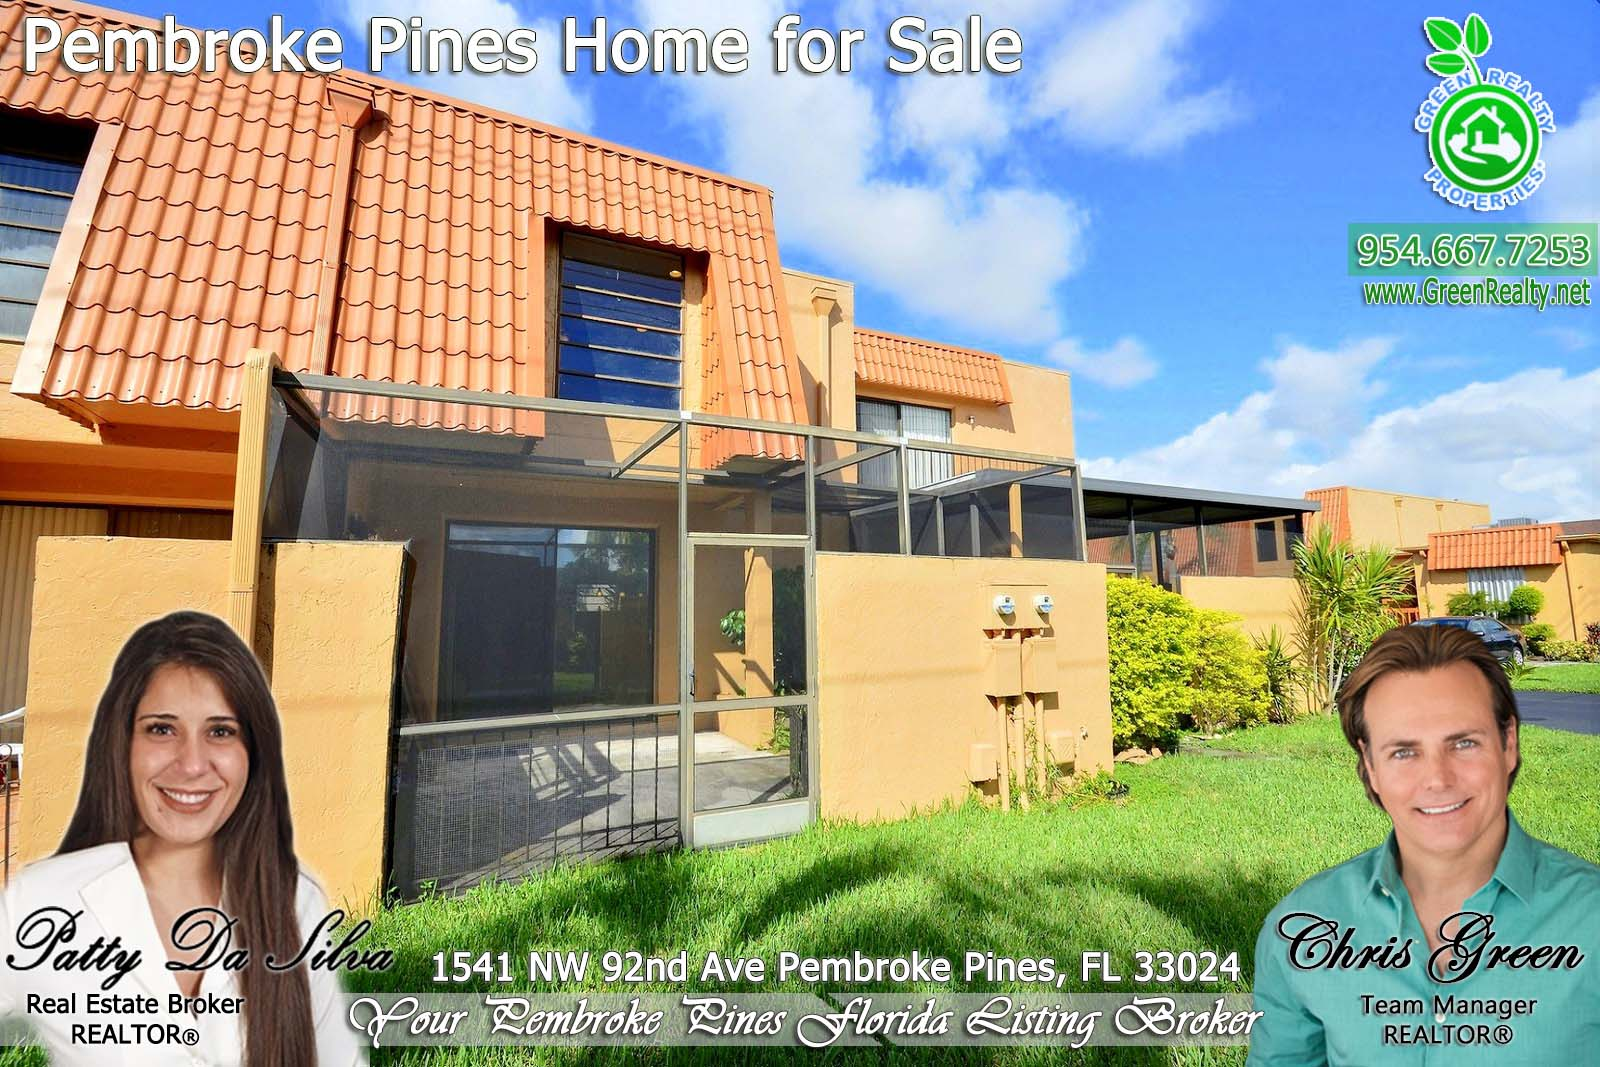 Pembroke Pines Real Estate Listings